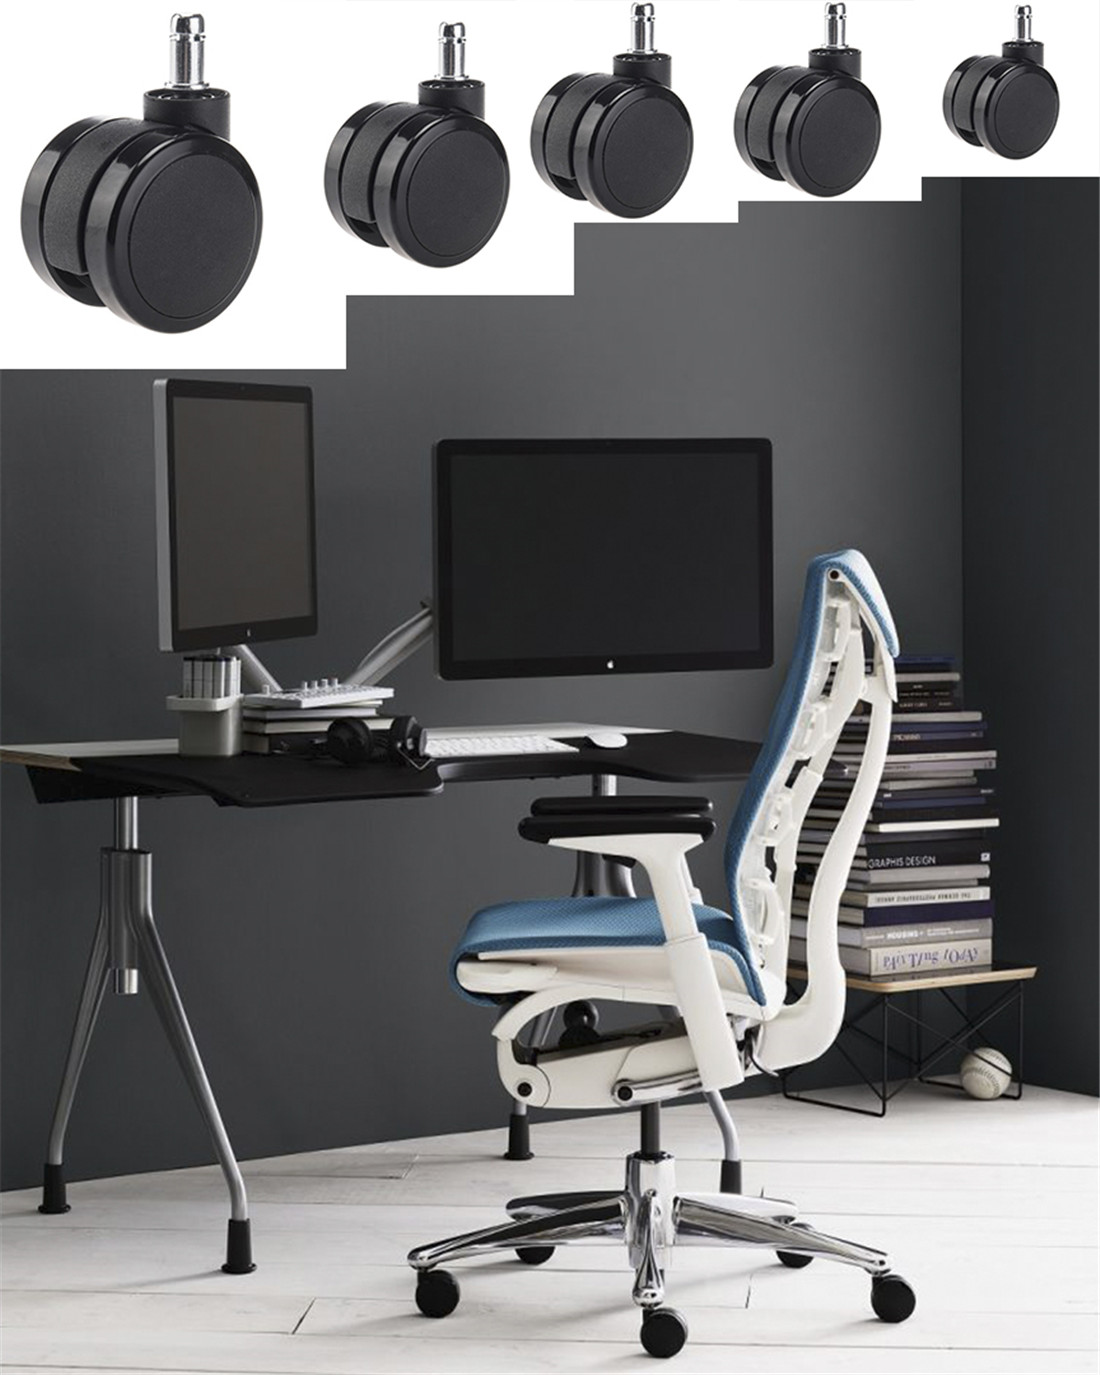 where can i bulk buy bifma certified office chair casters components